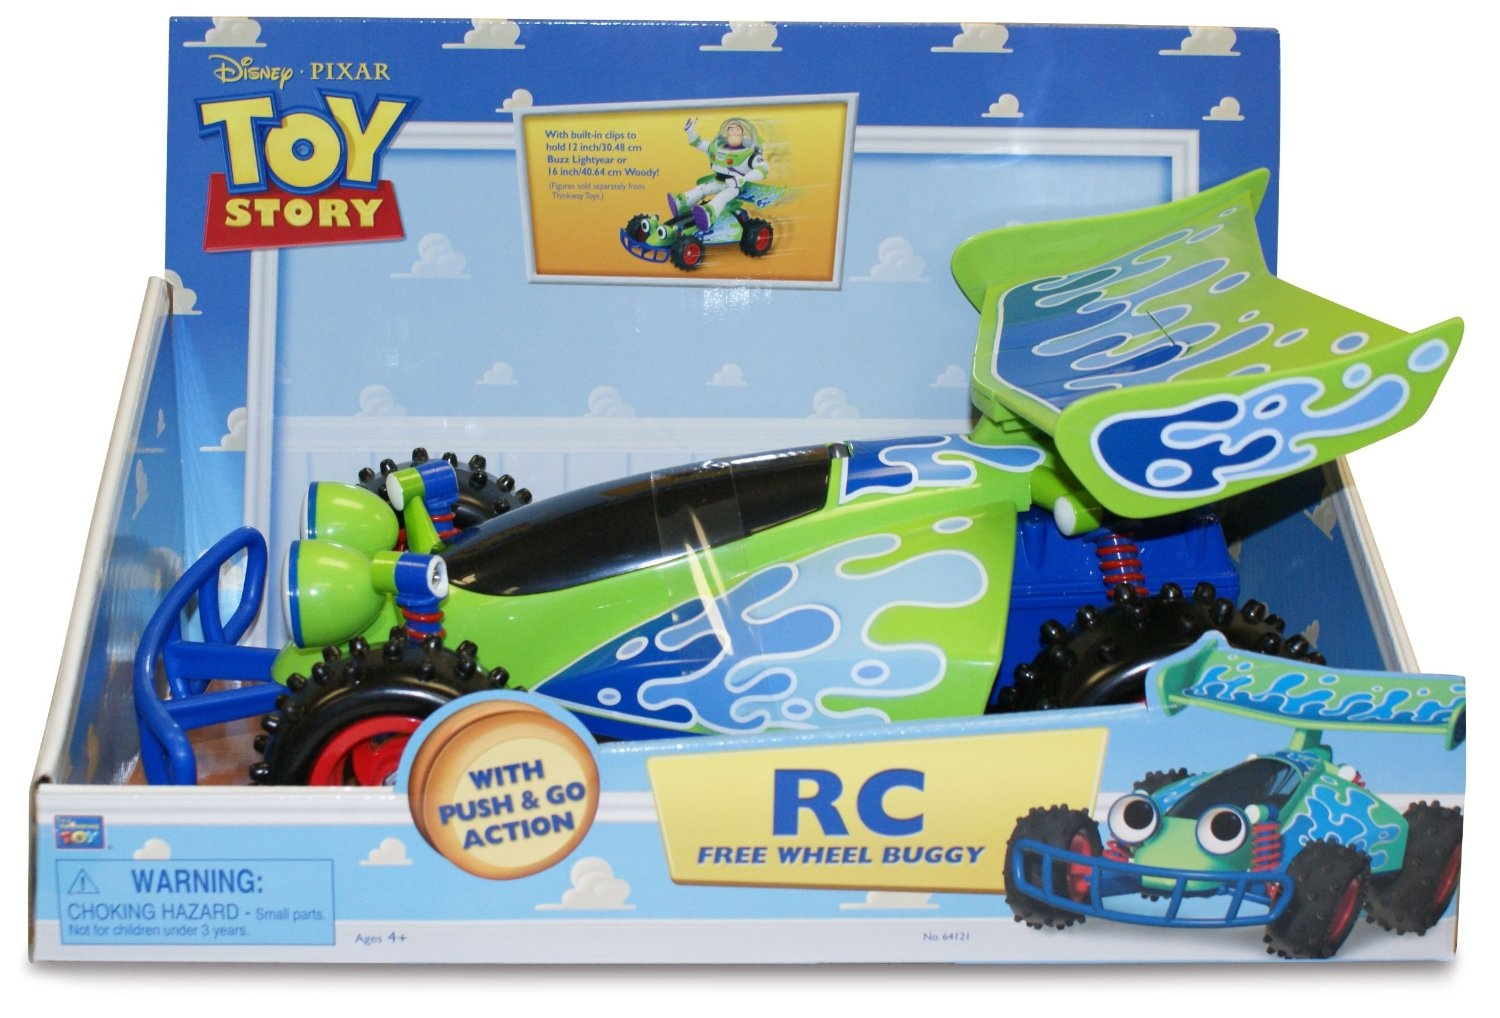 Toy Story Rc Buggy Toy Story Rc Free Wheel Buggy